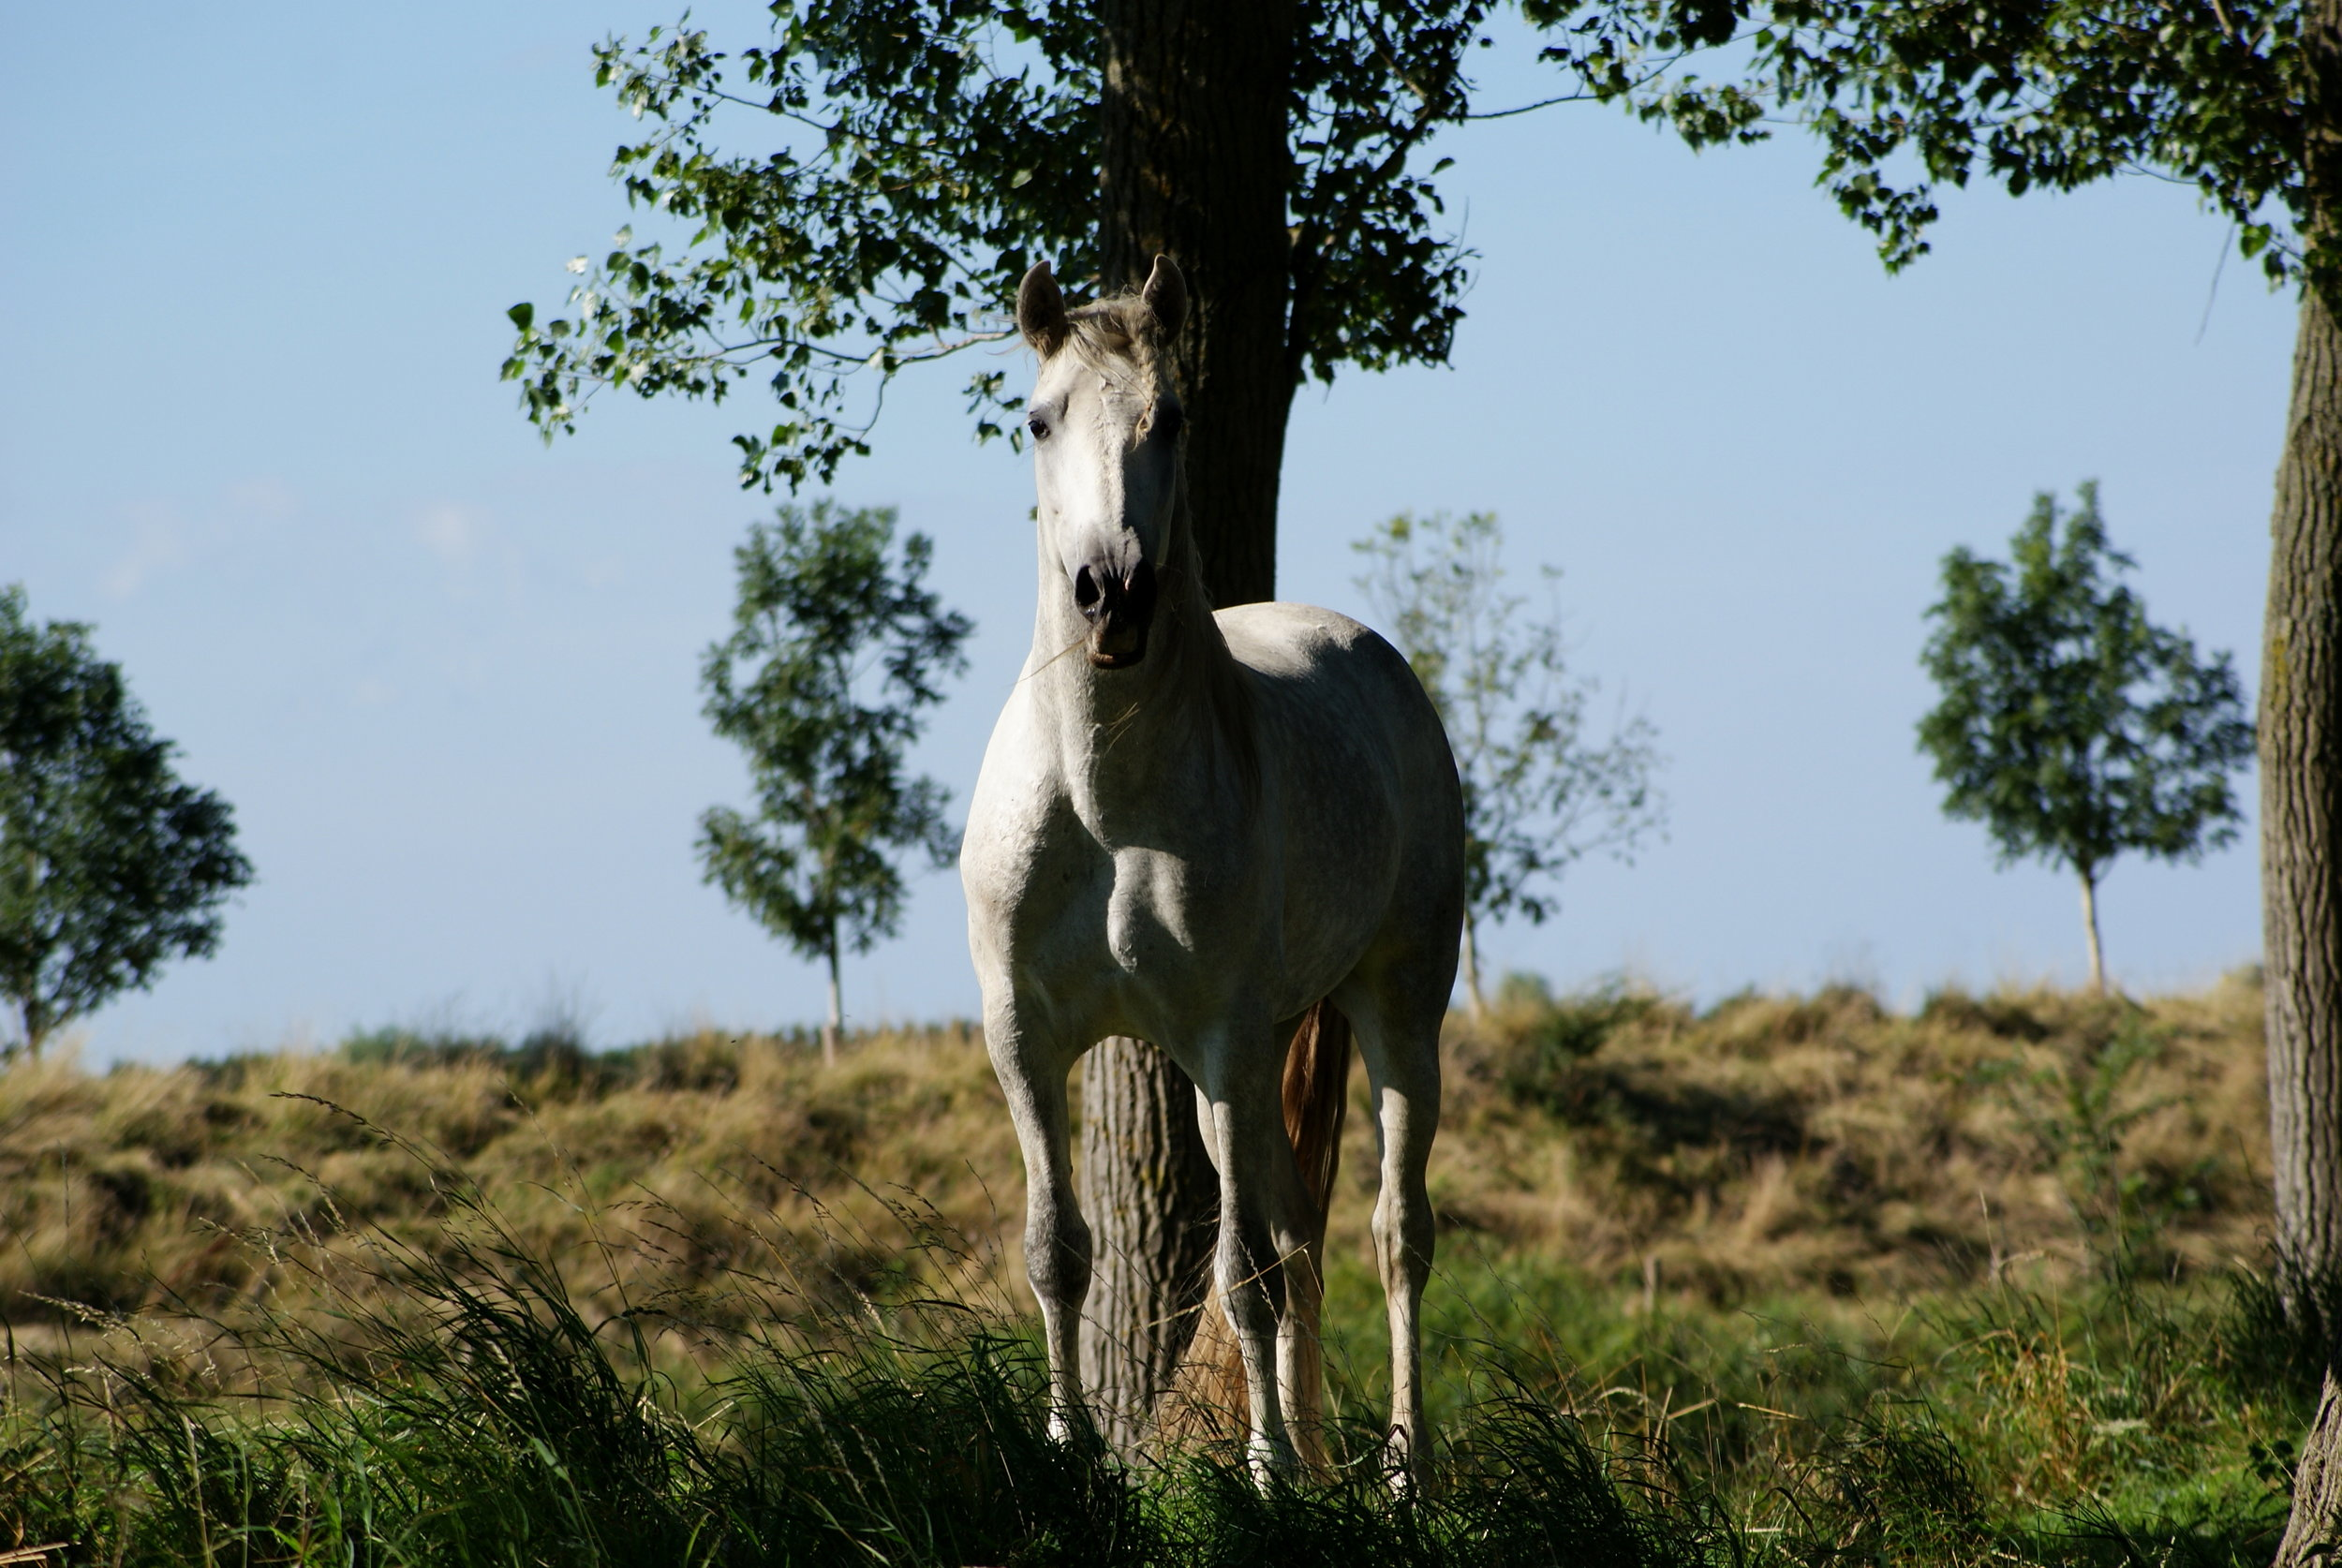 His horse - click on Aquila for more